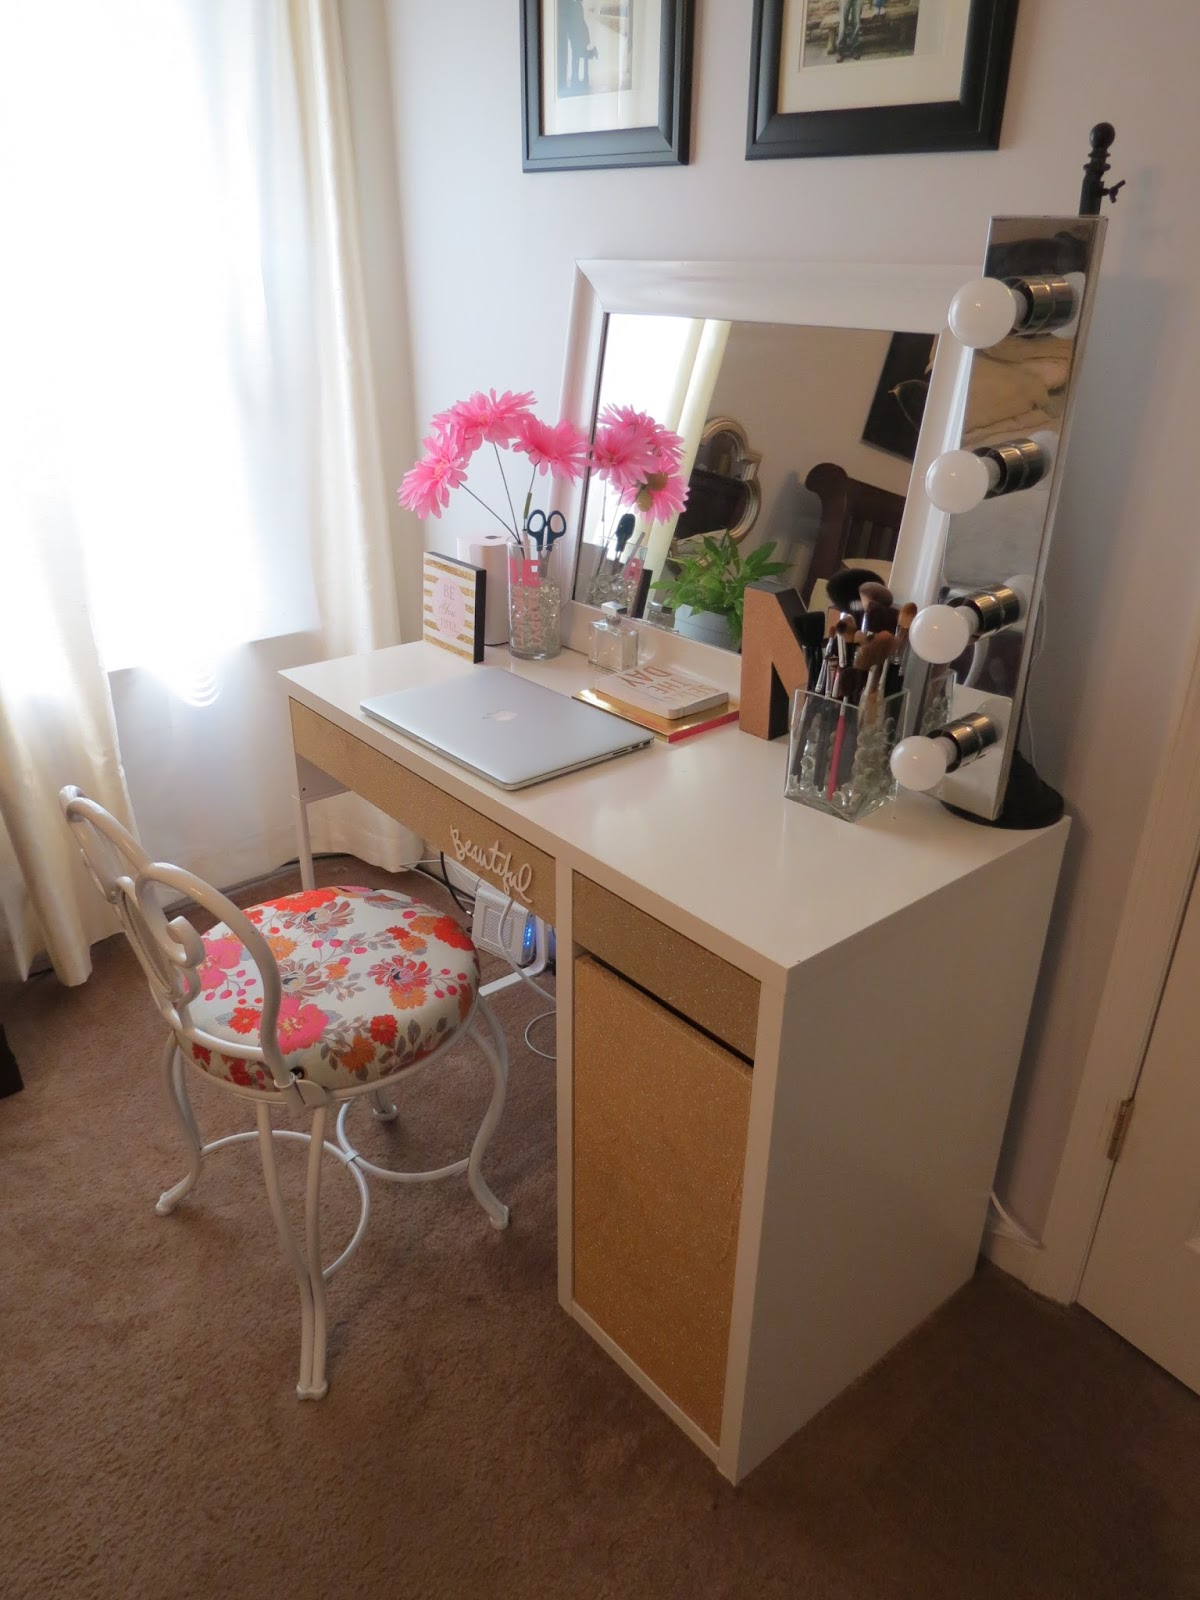 Ikea Vanity Chair Best Inexpensive Beach Chairs My 20 Desk Makeup Diy Projects By Nina